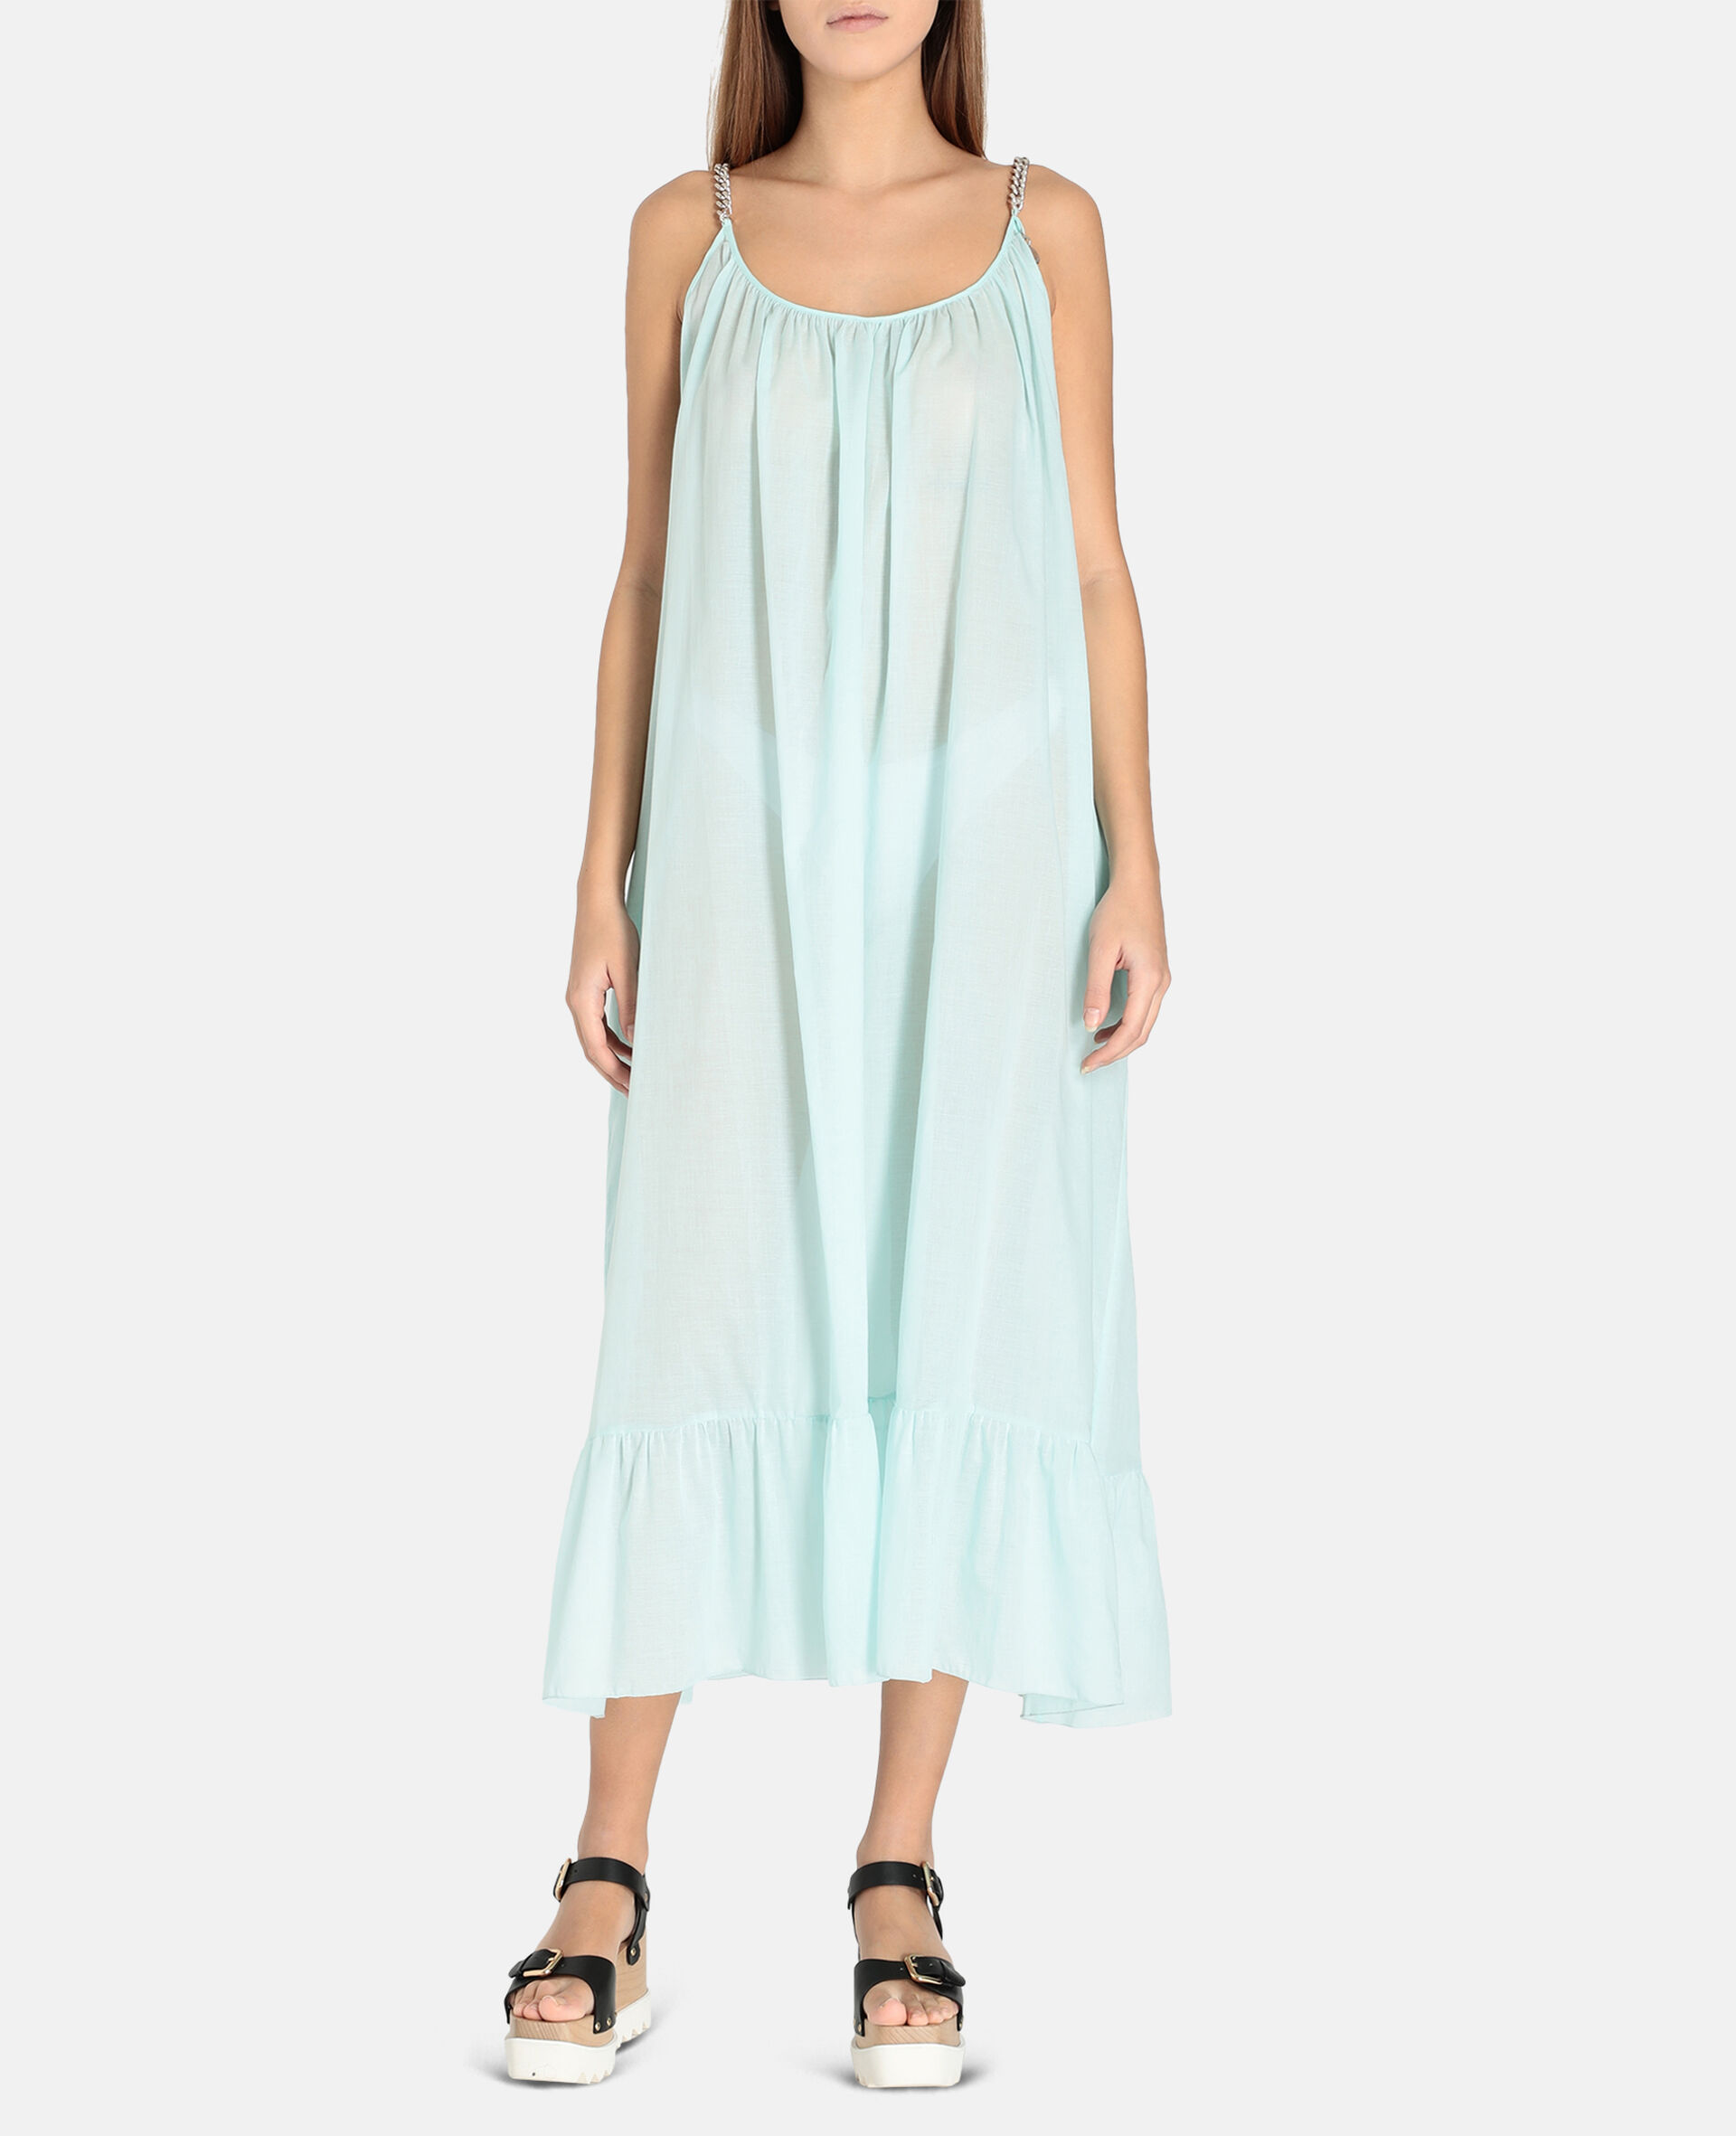 Iconic Chain Long Dress-Mint-large image number 3